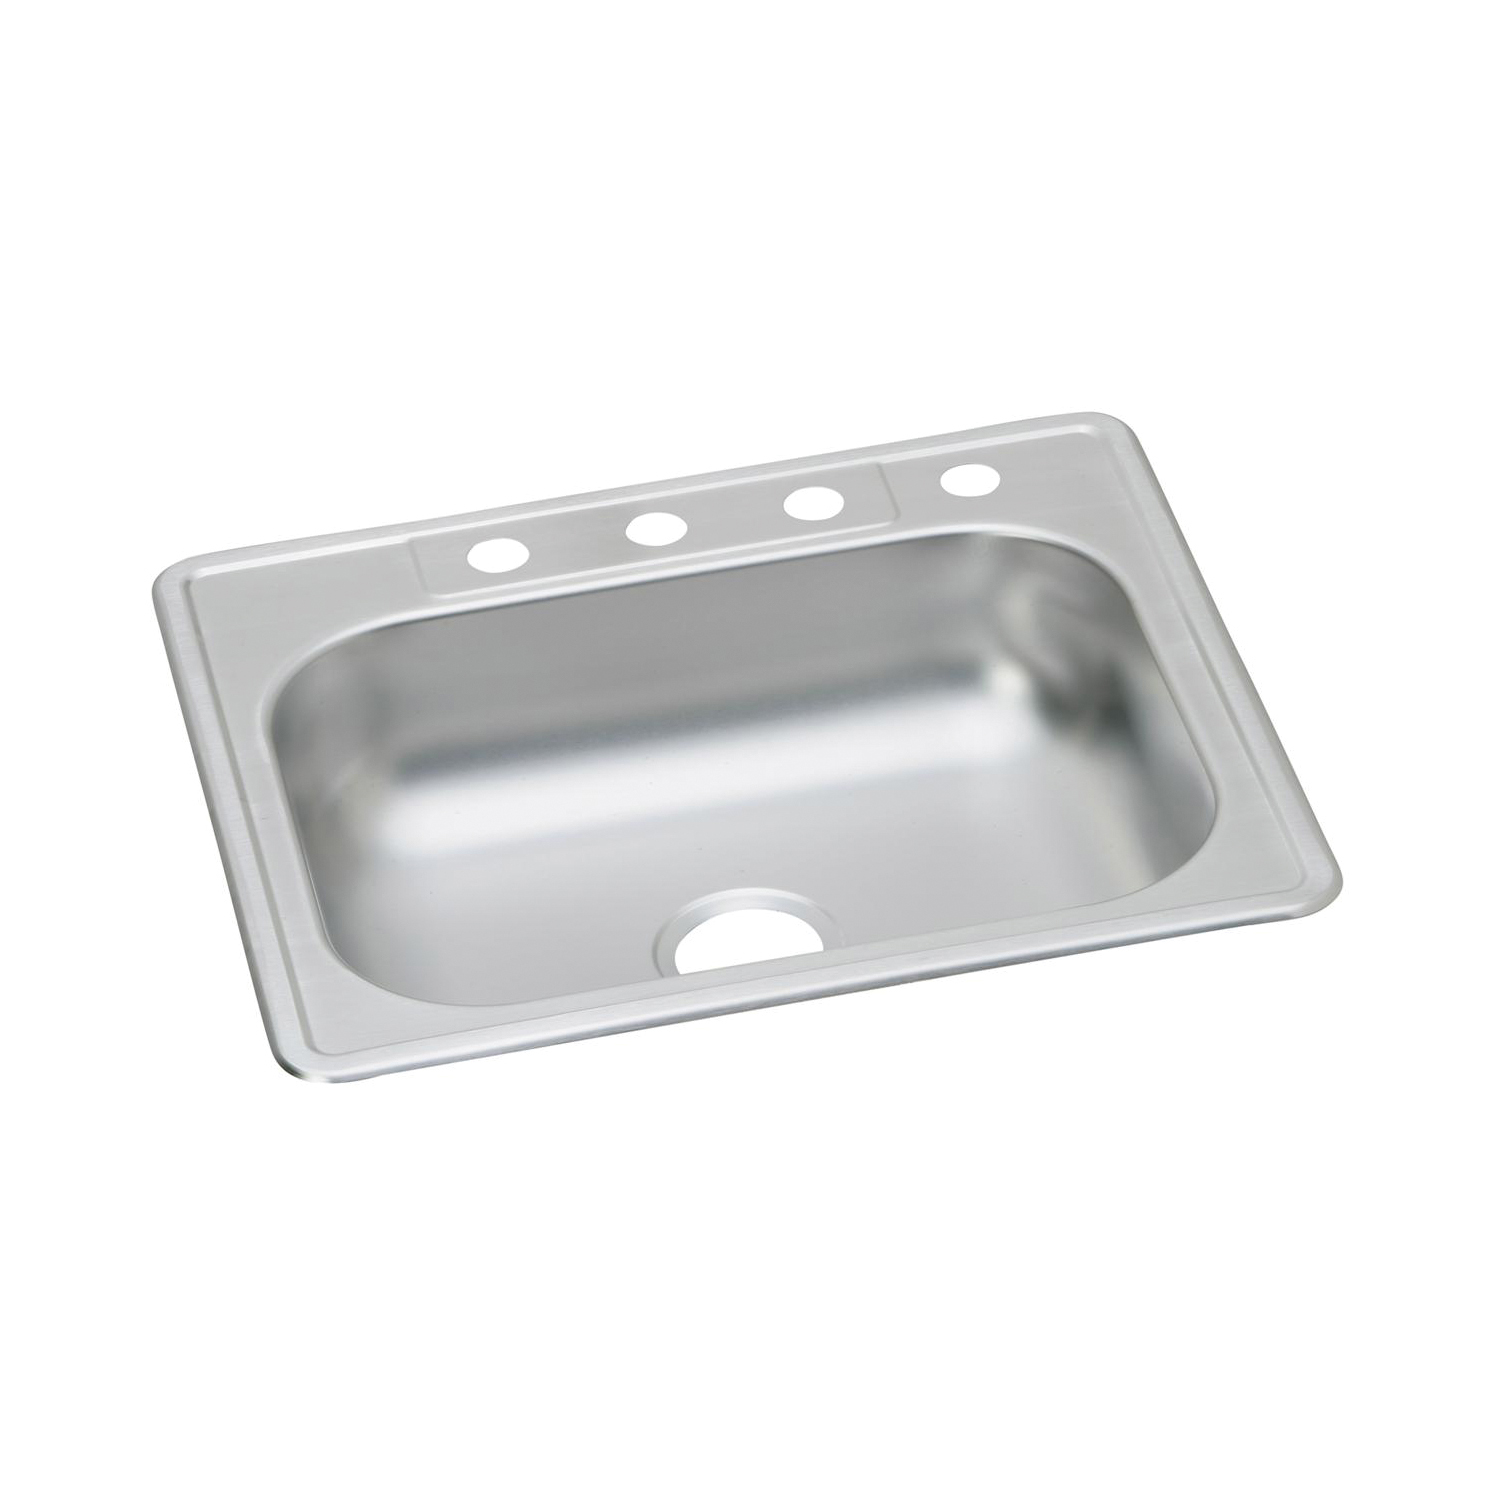 Elkay® K125223 Dayton® Kitchen Sink, Rectangular, 3 Faucet Holes, 25 in W x 22 in D x 6-1/16 in H, Top Mount, Stainless Steel, Satin, Domestic